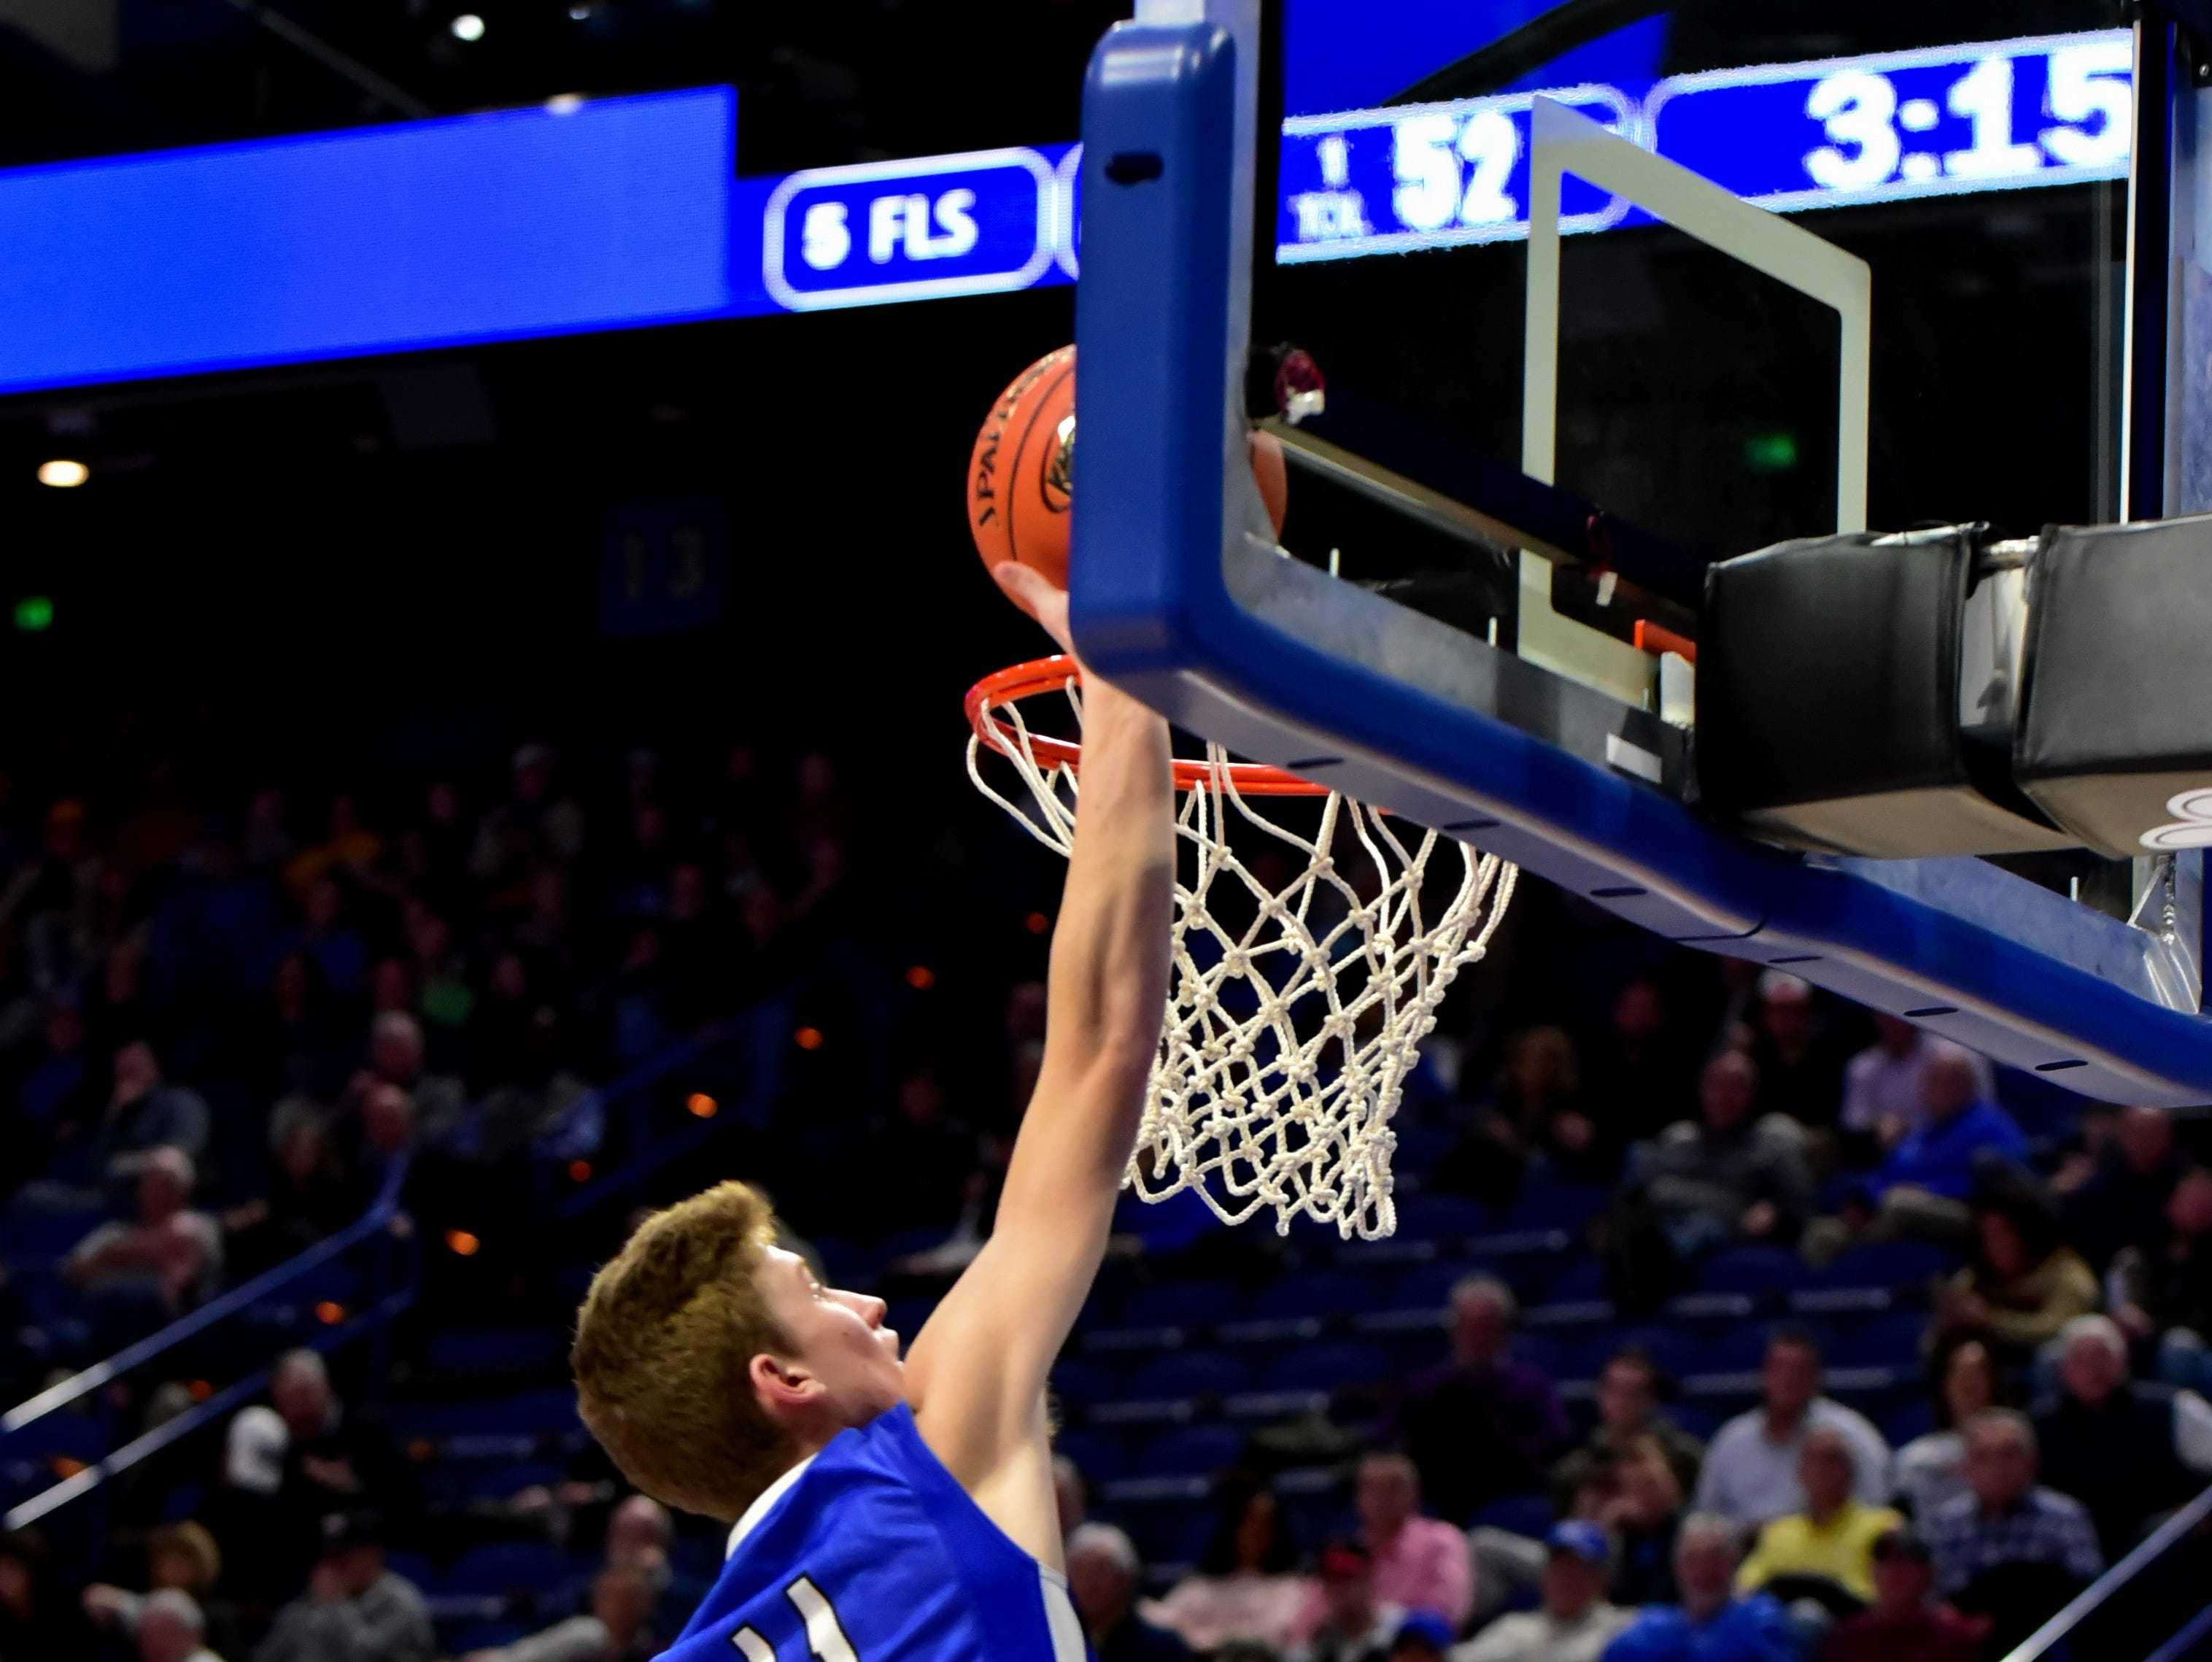 Trey Bonne skies to the hoop for points for the Bearcats as they top Knox Central in first round action at the KHSAA Sweet 16 Tournament at Rupp Arena in Lexington, KY, March 6, 2019